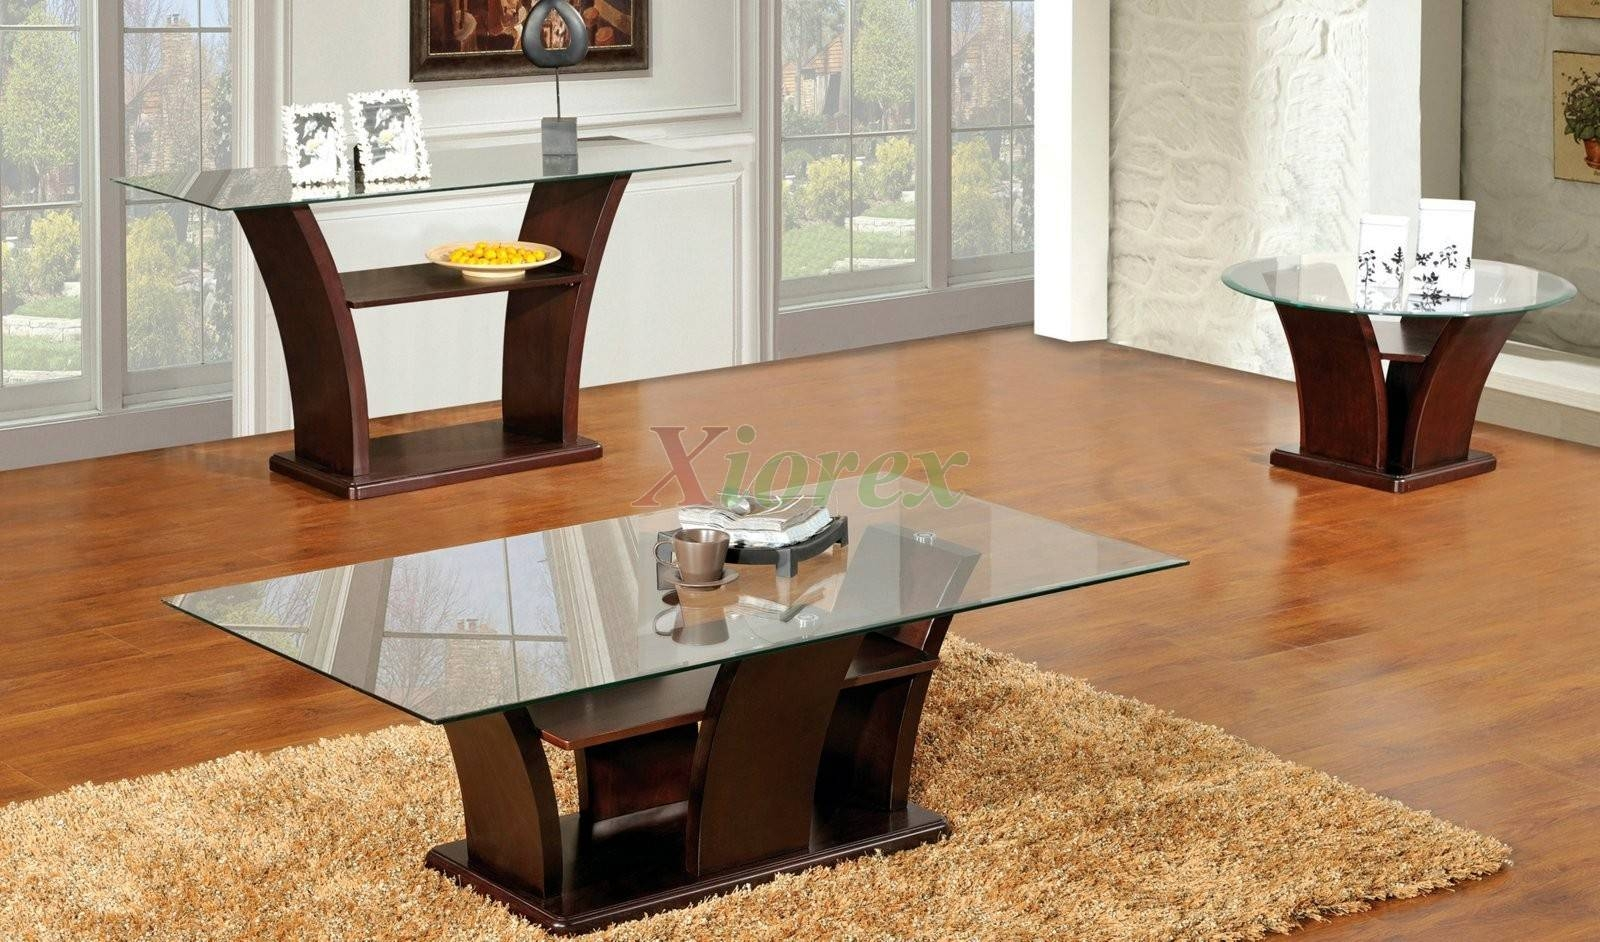 Coffee Table : 3 Coffee Table Set One Of Popular Living Room inside Coffee Tables With Rounded Corners (Image 5 of 30)